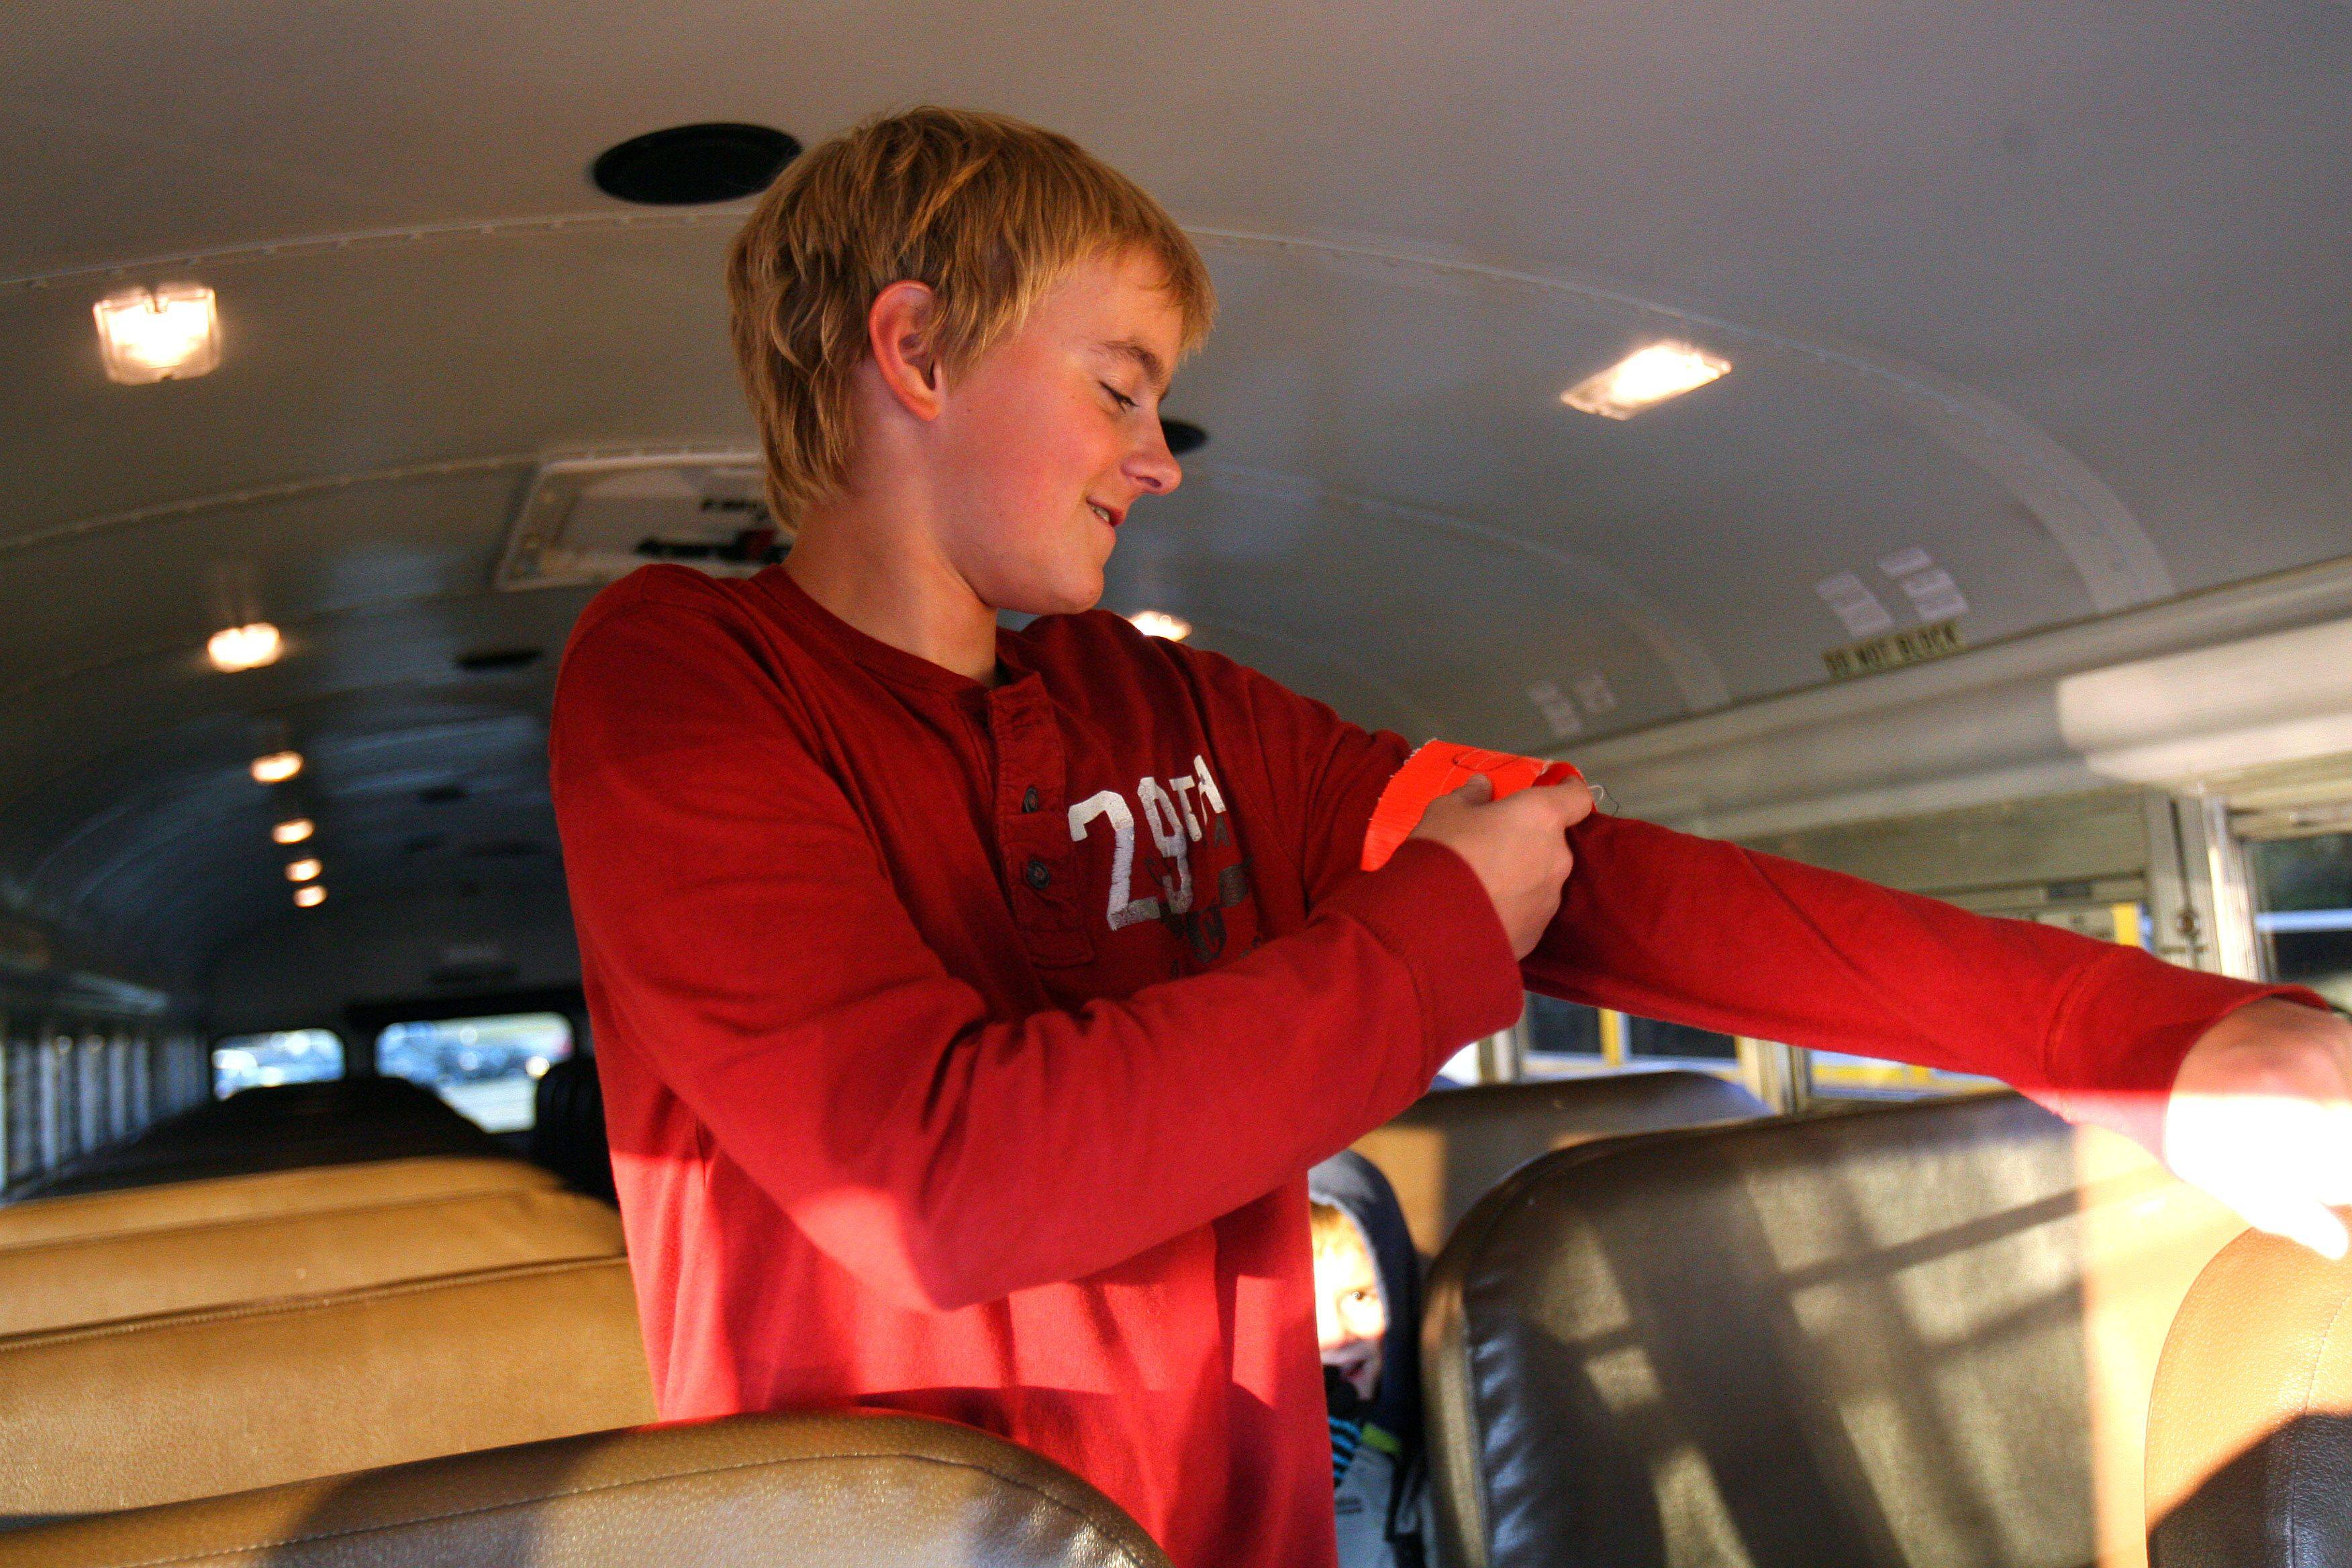 Eighth-grader Trevor Fox puts on his bus patrol arm band. Fremont School District 79 has implemented a program where eighth-graders ride along on buses carrying kindergarten through fifth-graders to help the bus drivers.